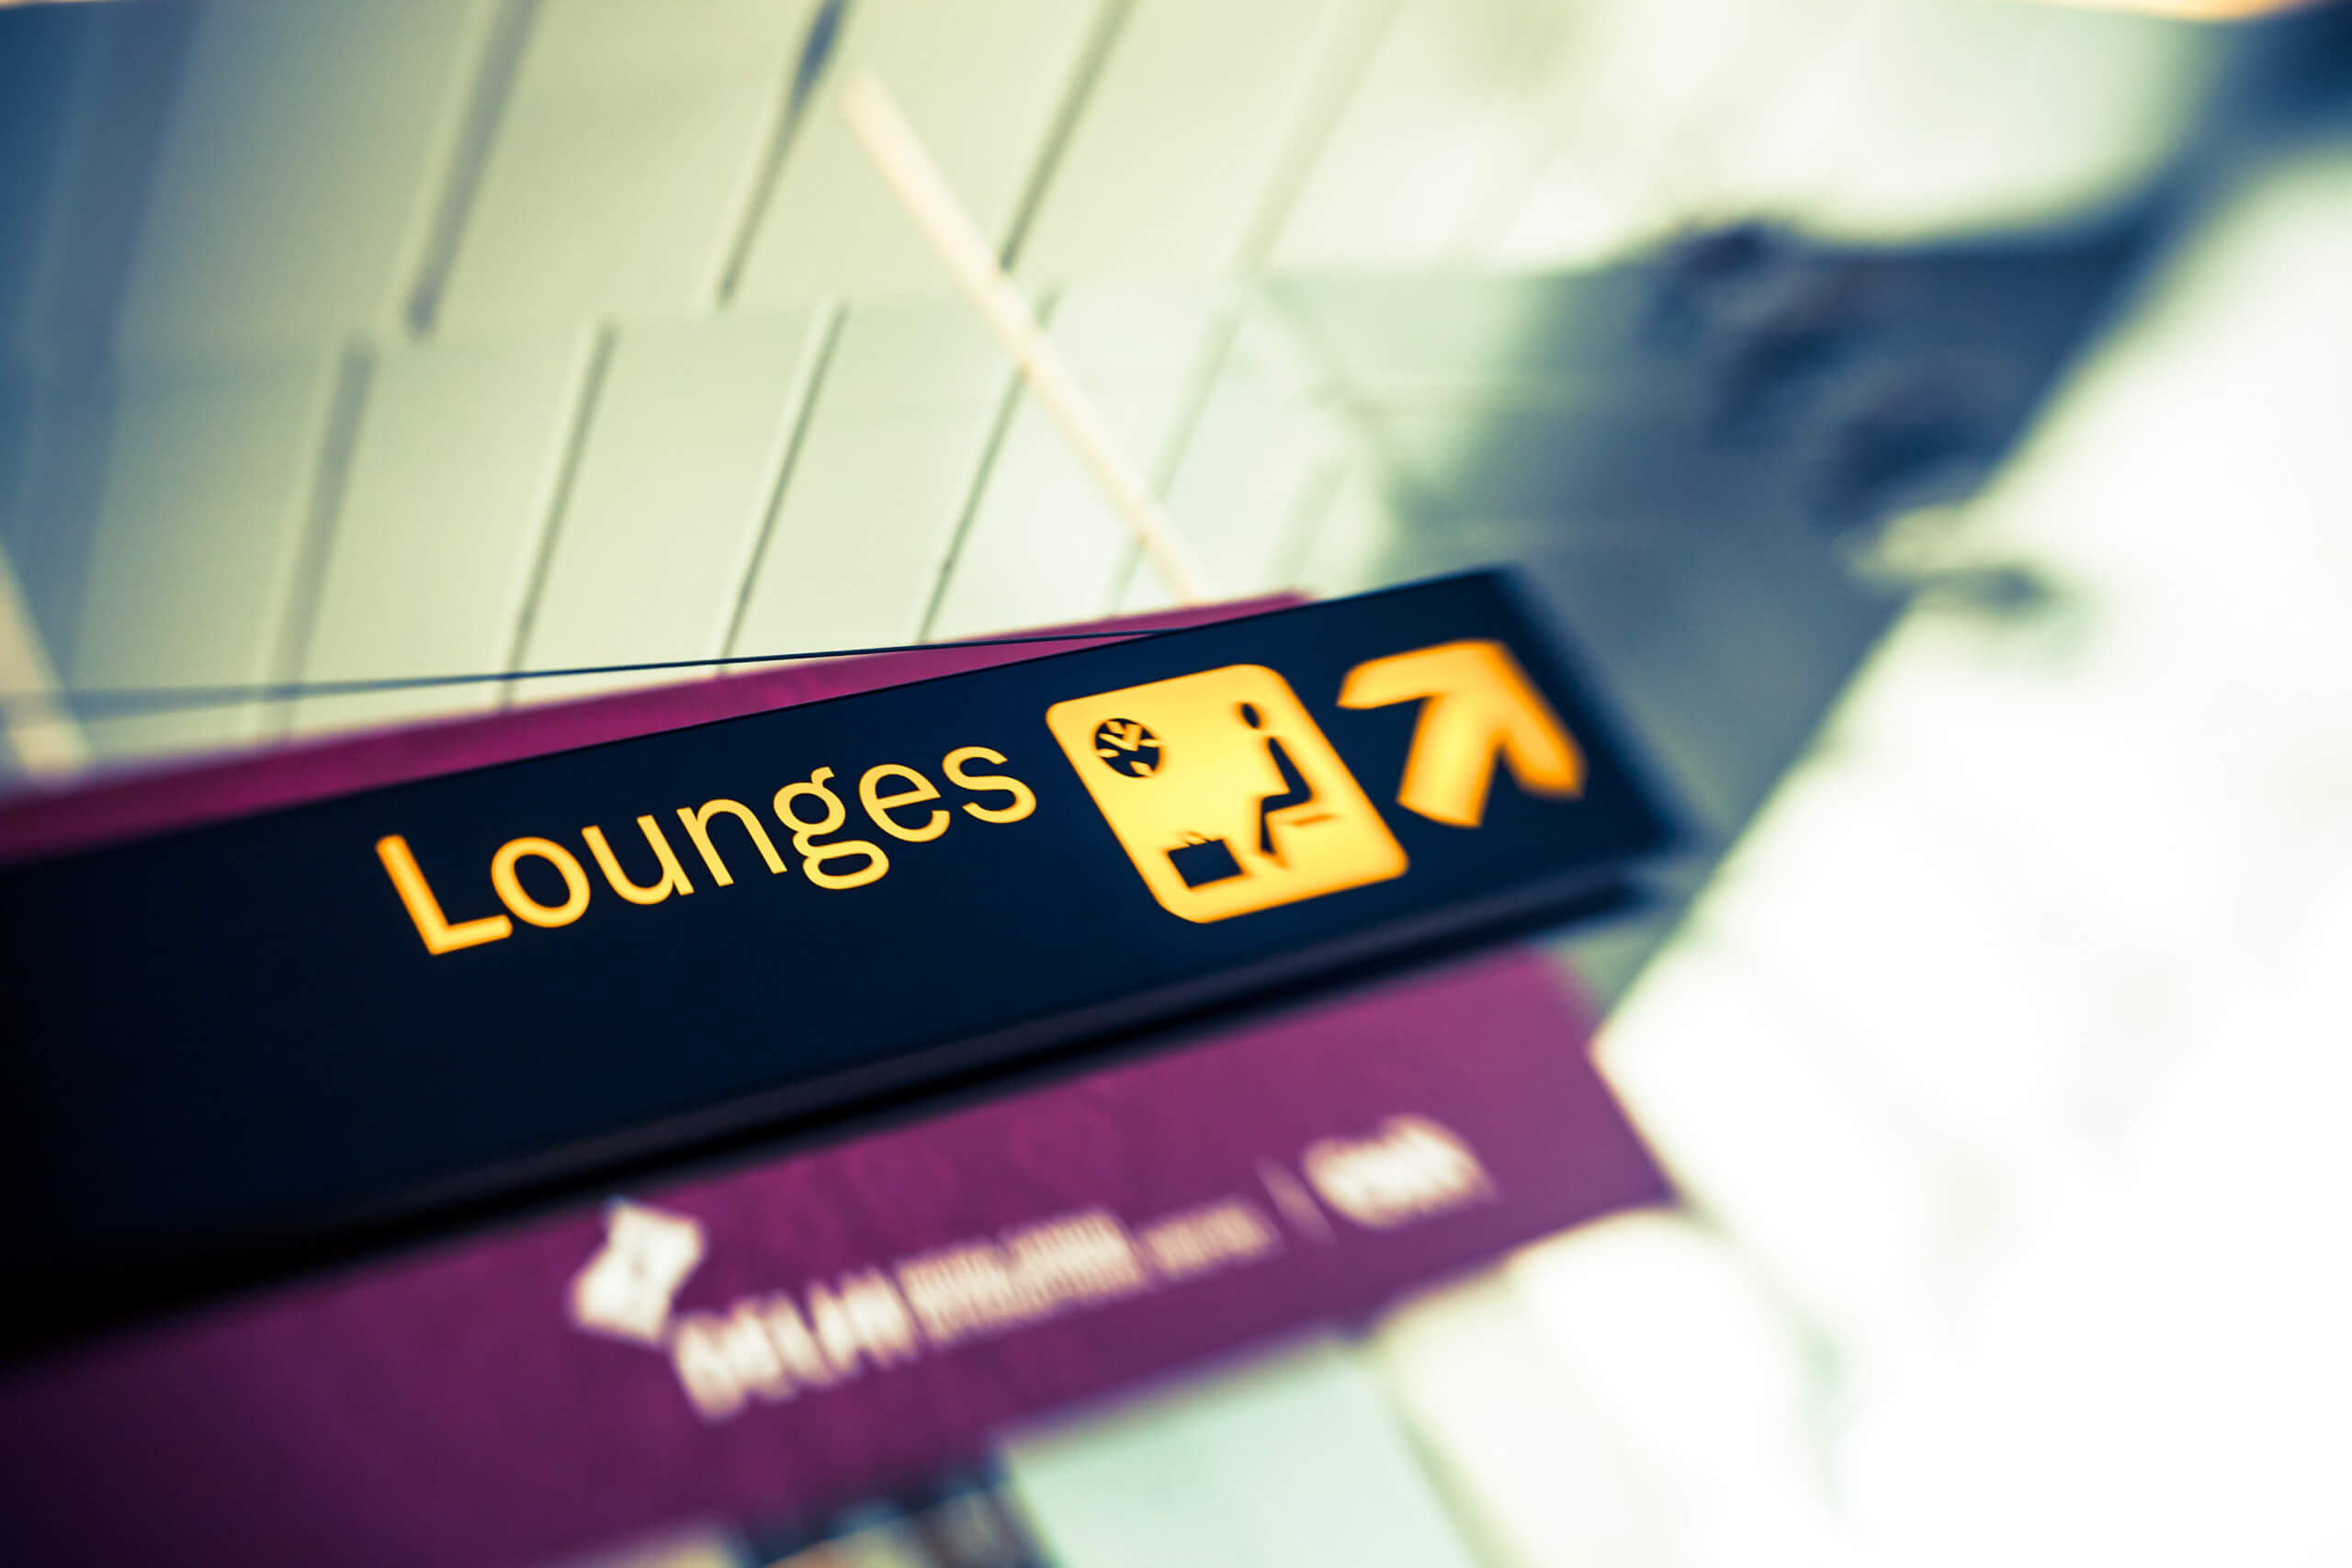 A sign in an airport for the airport lounges